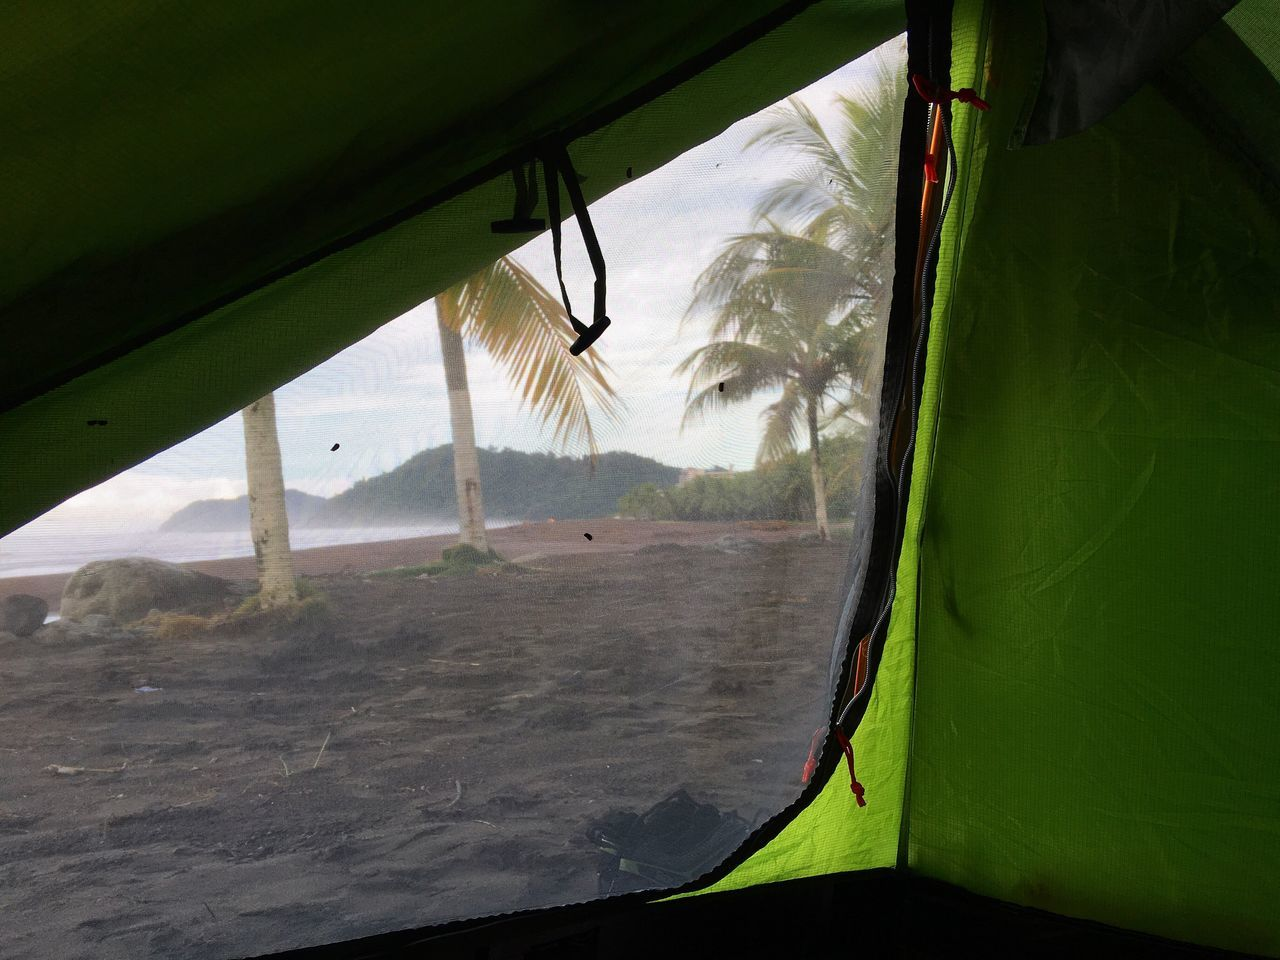 Wakeup Camping Nature On The Beach Landscape Adventure Jungle Morning Morning Light Palm Palm Tree View Tent Bivouac Backpacking Backpacker Adventurer Costa Rica Miles Away Beach Jaco Beach Pacific Coast Central America Wake Up My Year My View